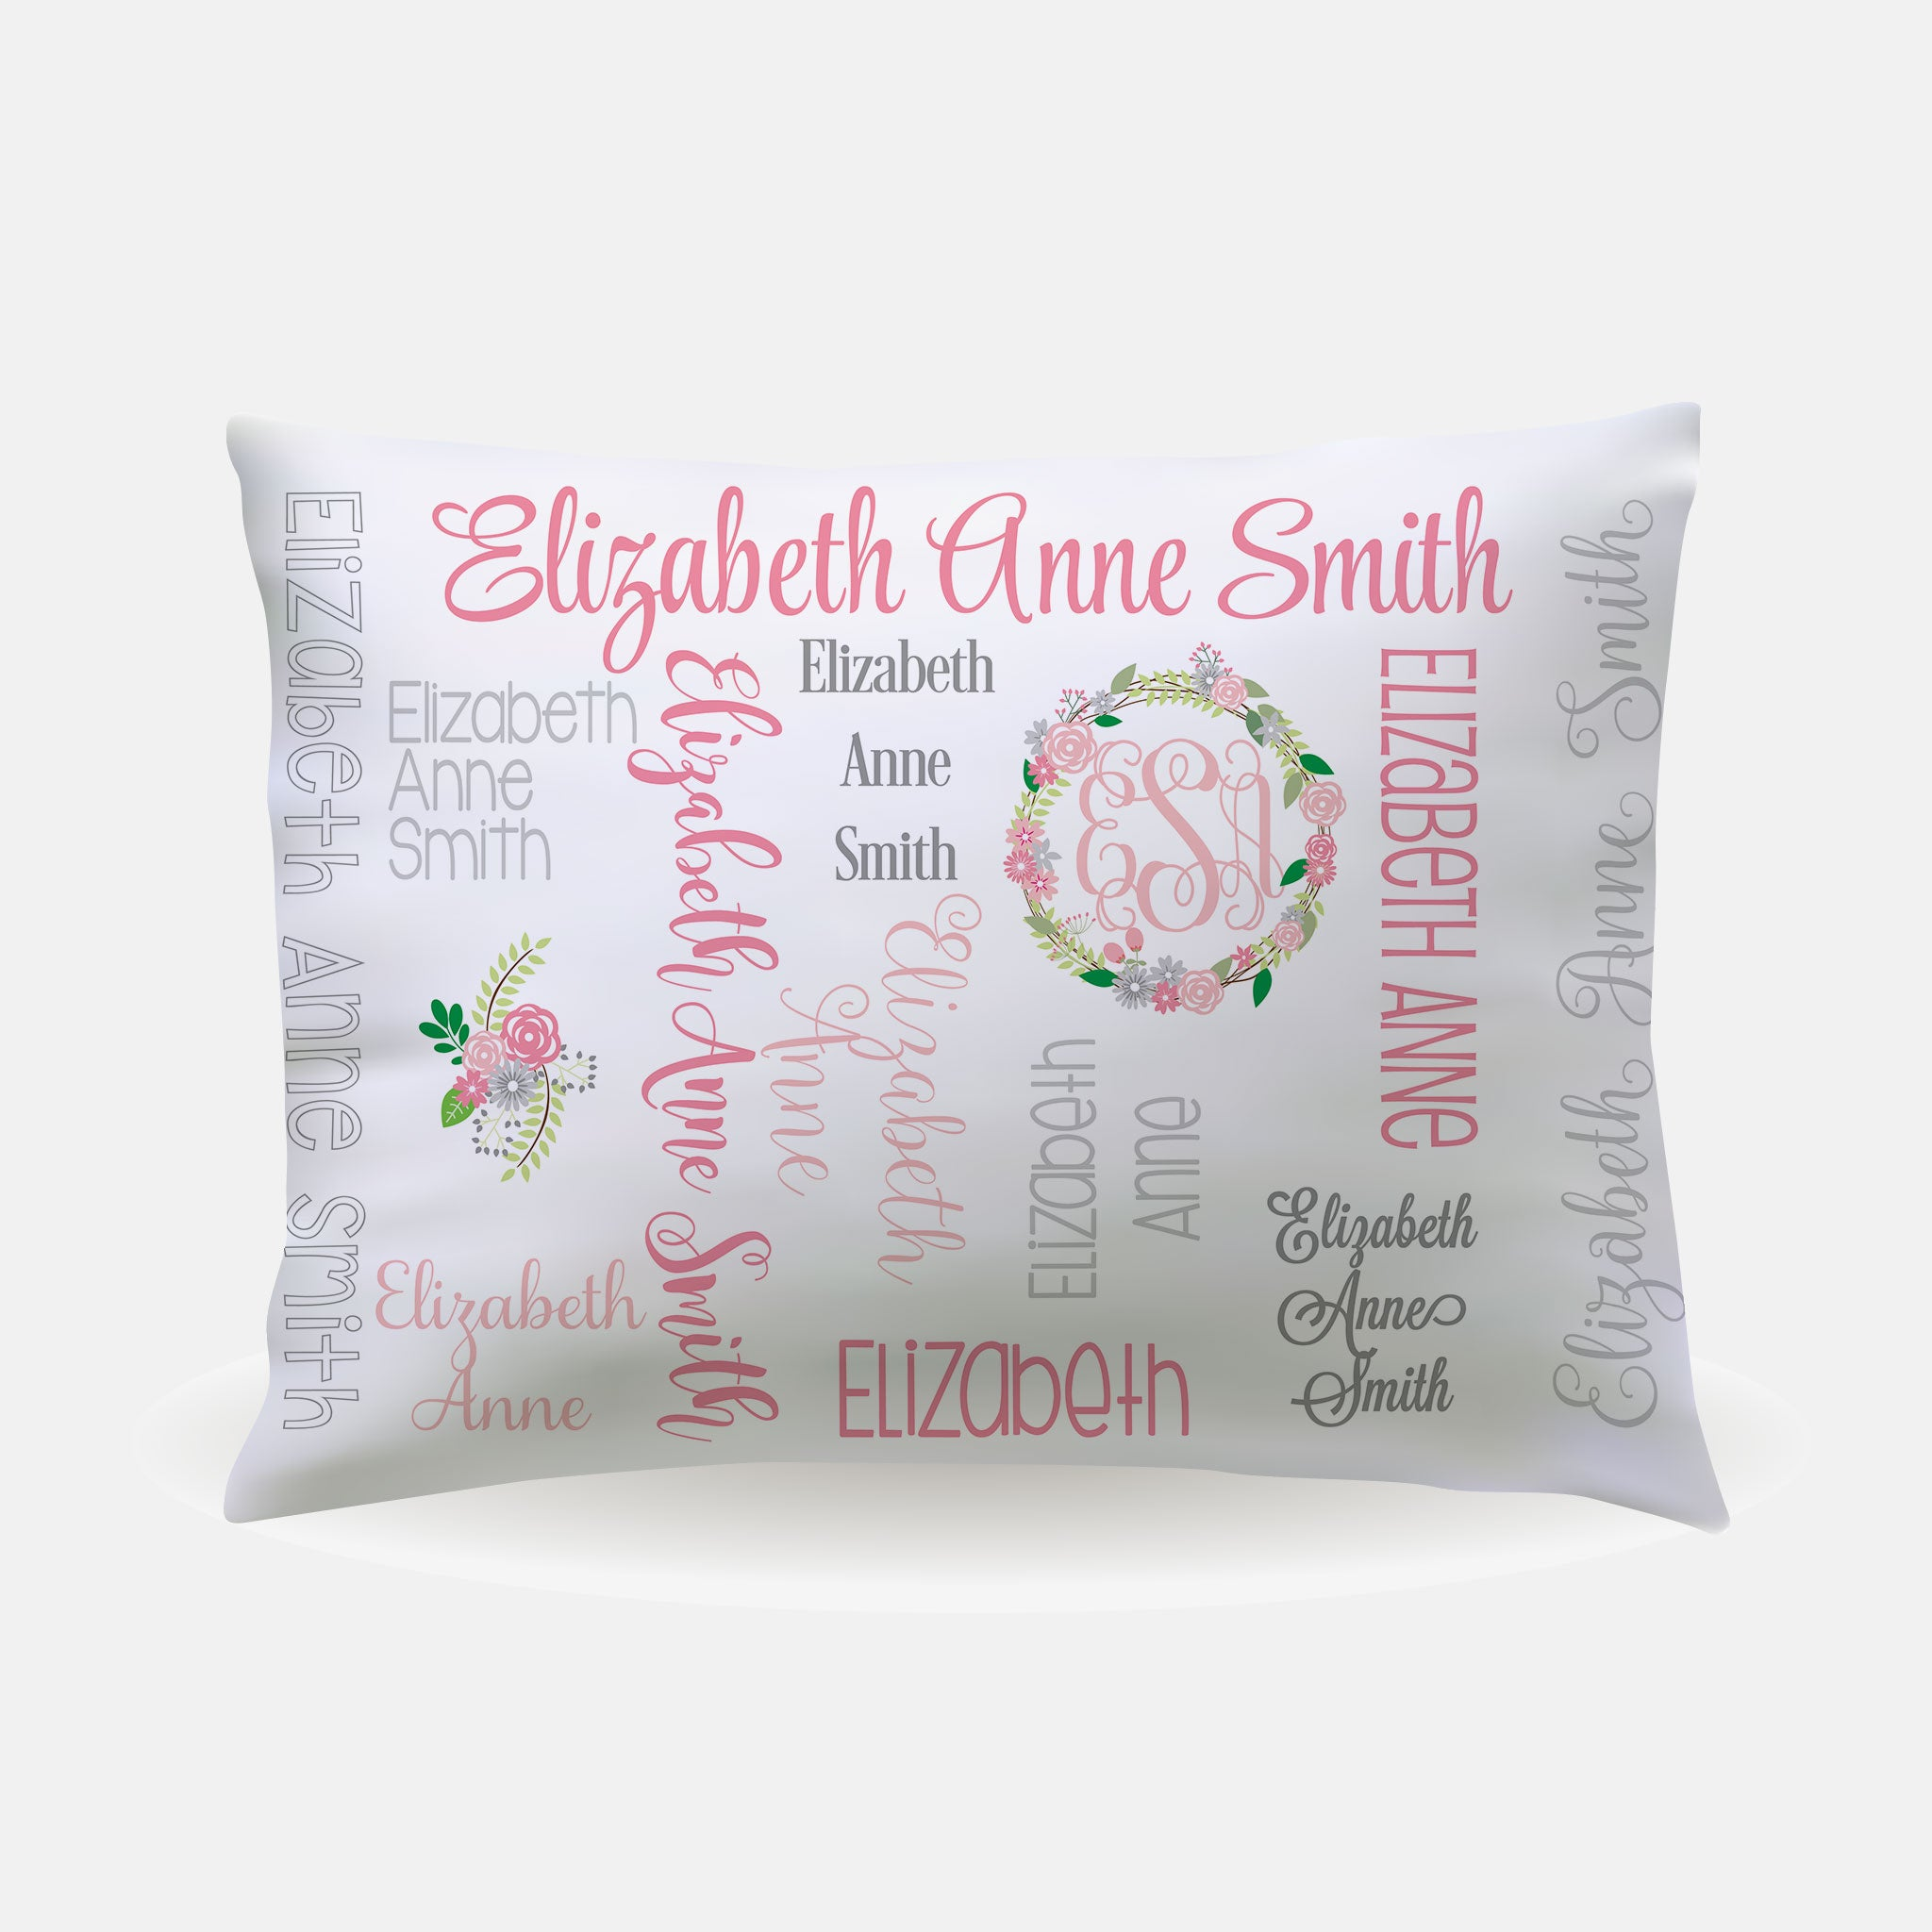 Pillow Case - standard size - All Over Floral pastels